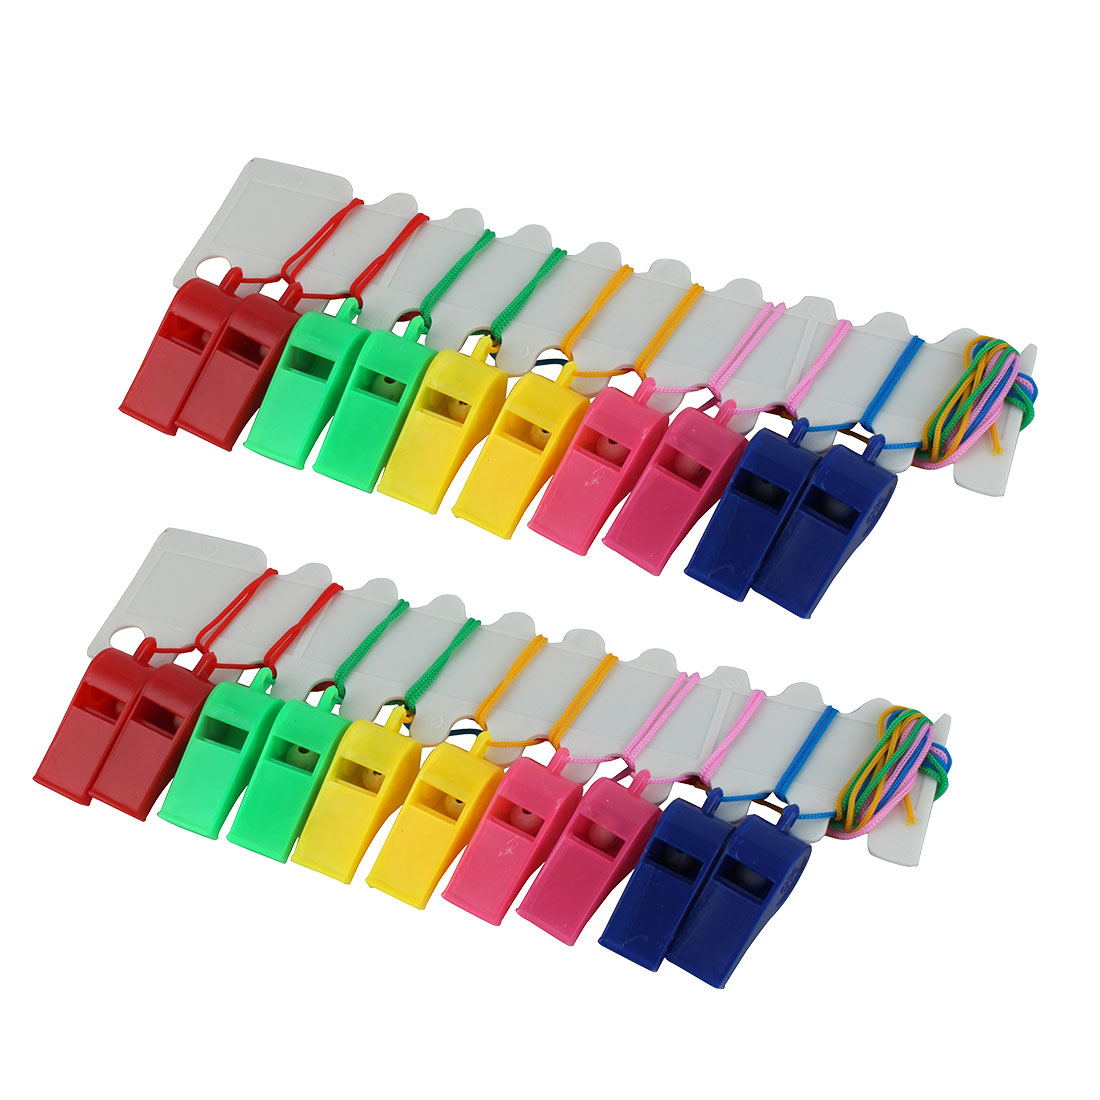 Colorful Nylon Neck Strap Basketball Match Referee Whistles 20 Pcs